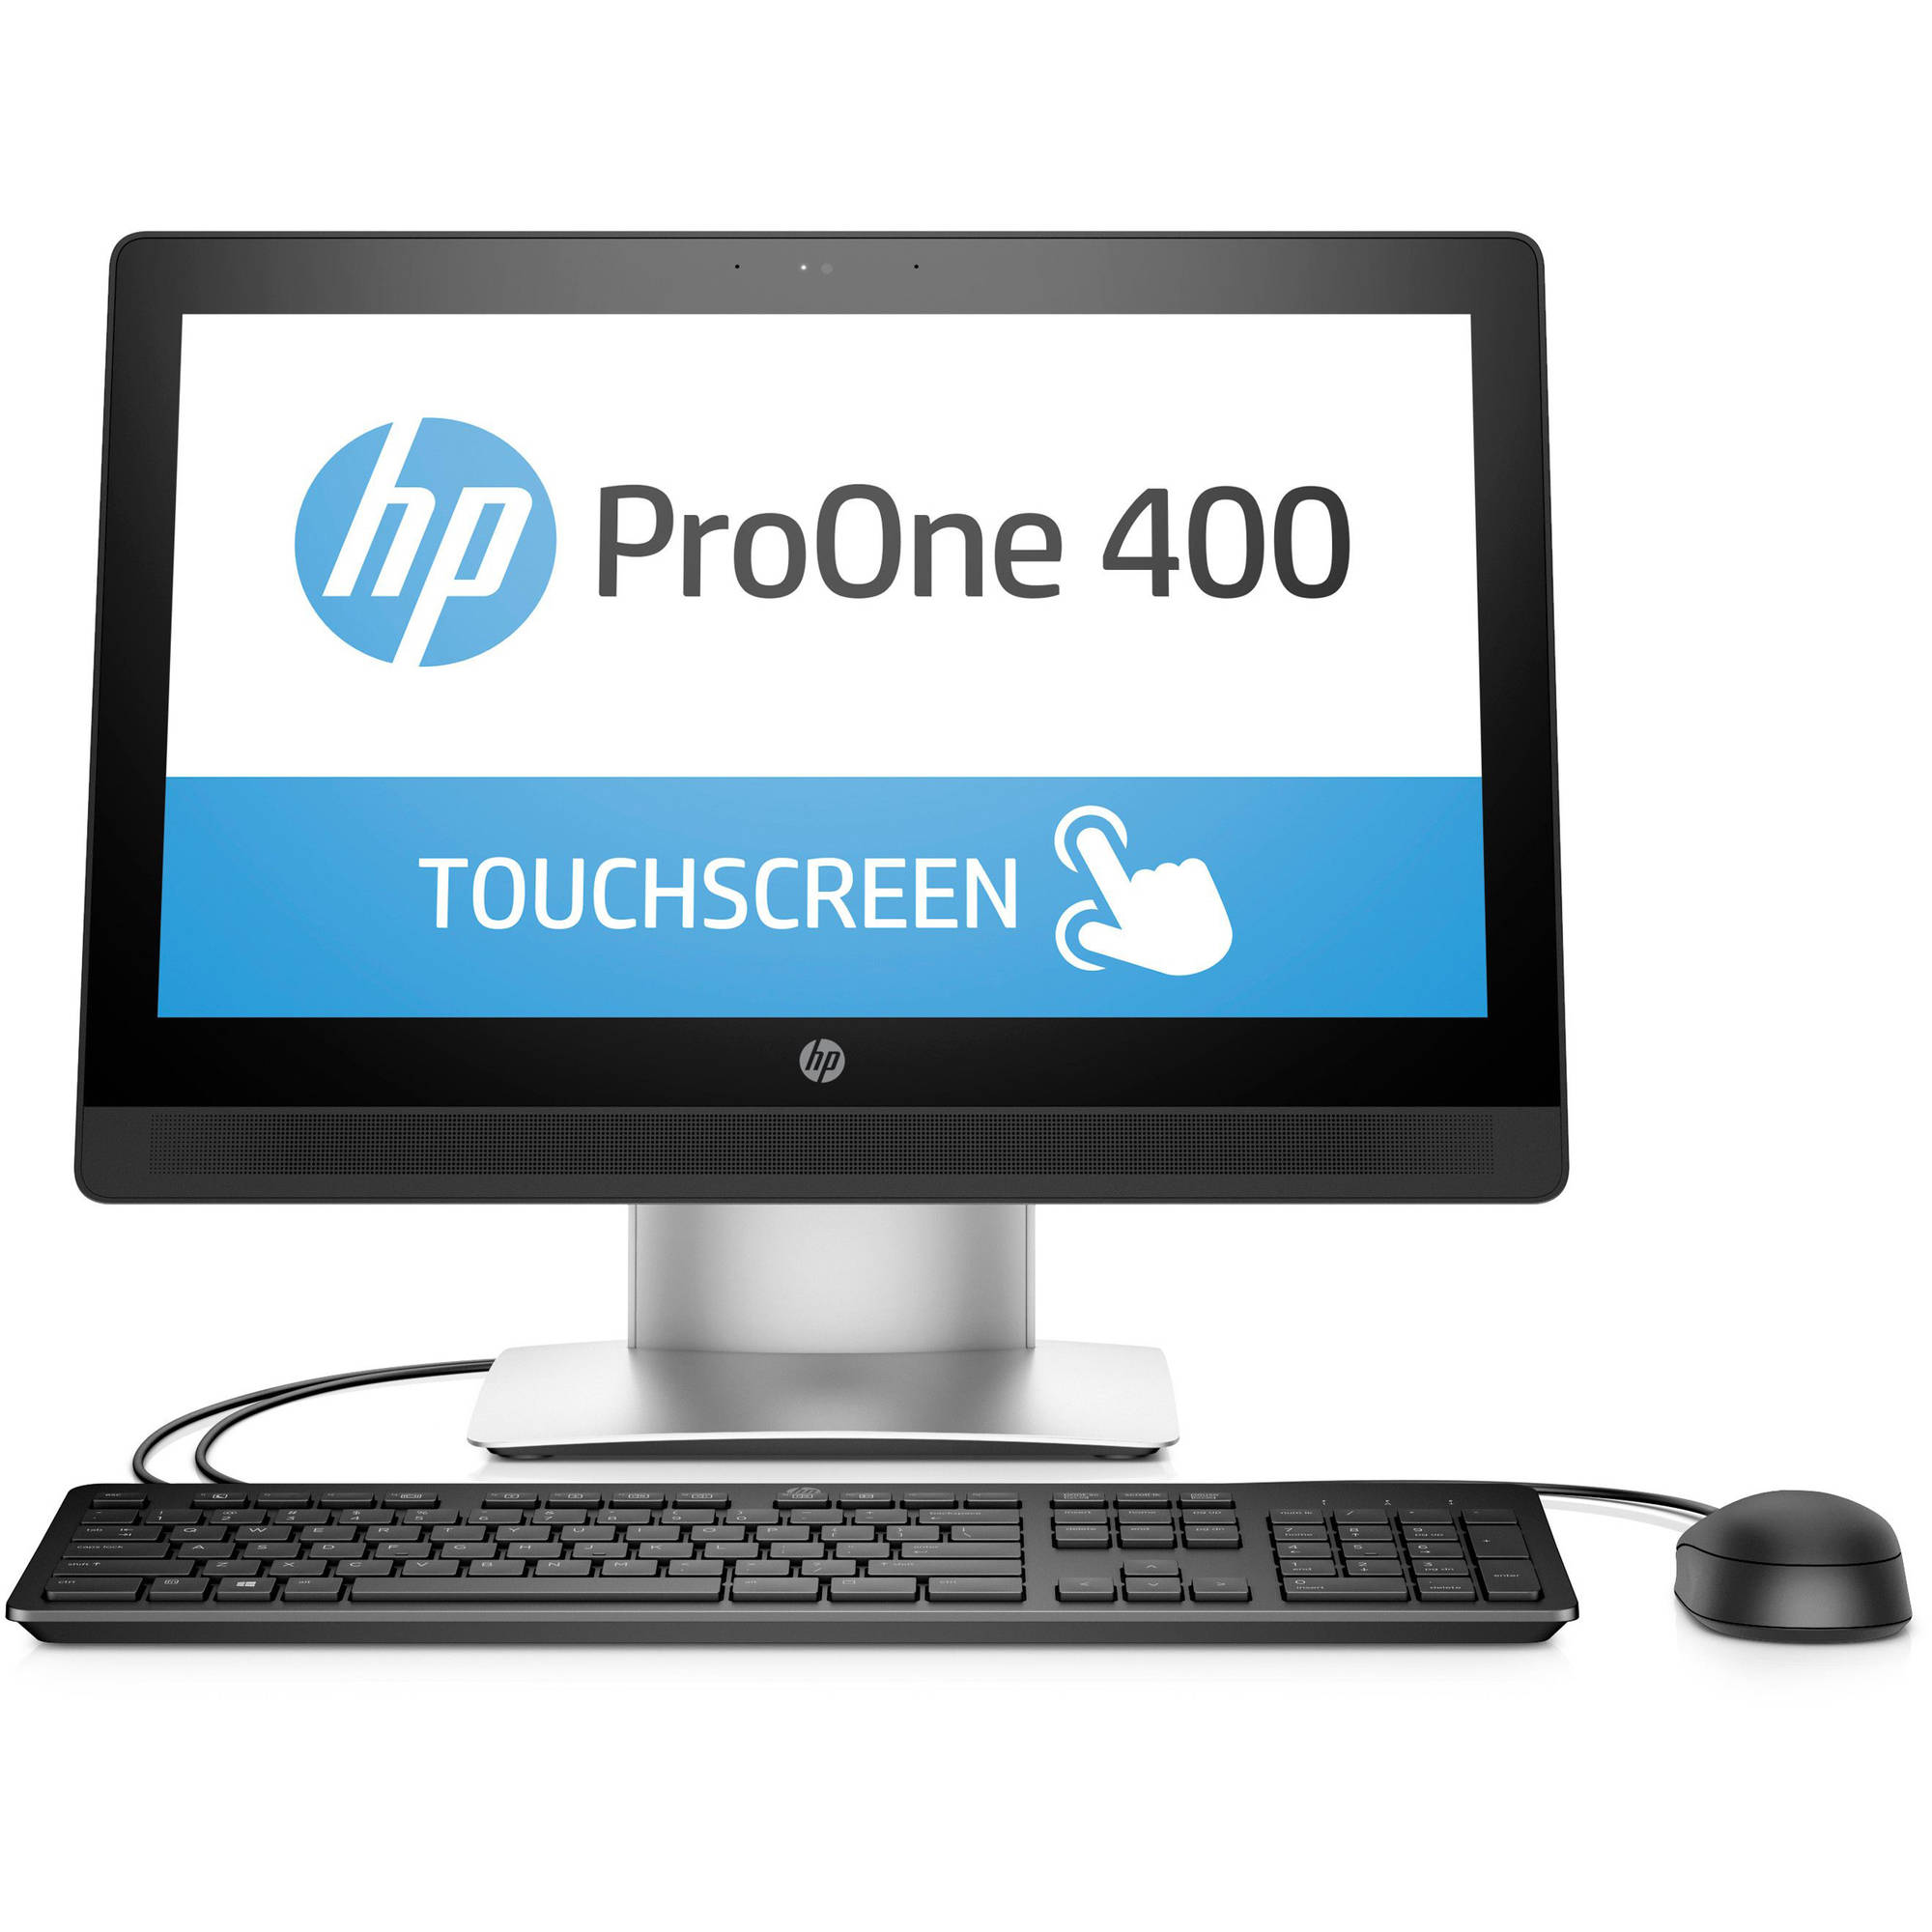 "HP ProOne 400 G1 P5U57UT All-in-One Desktop PC with Intel Core i3-6100 Processor, 4GB Memory, 20"" touch screen, 500GB Hard Drive and Windows 7 Professional"